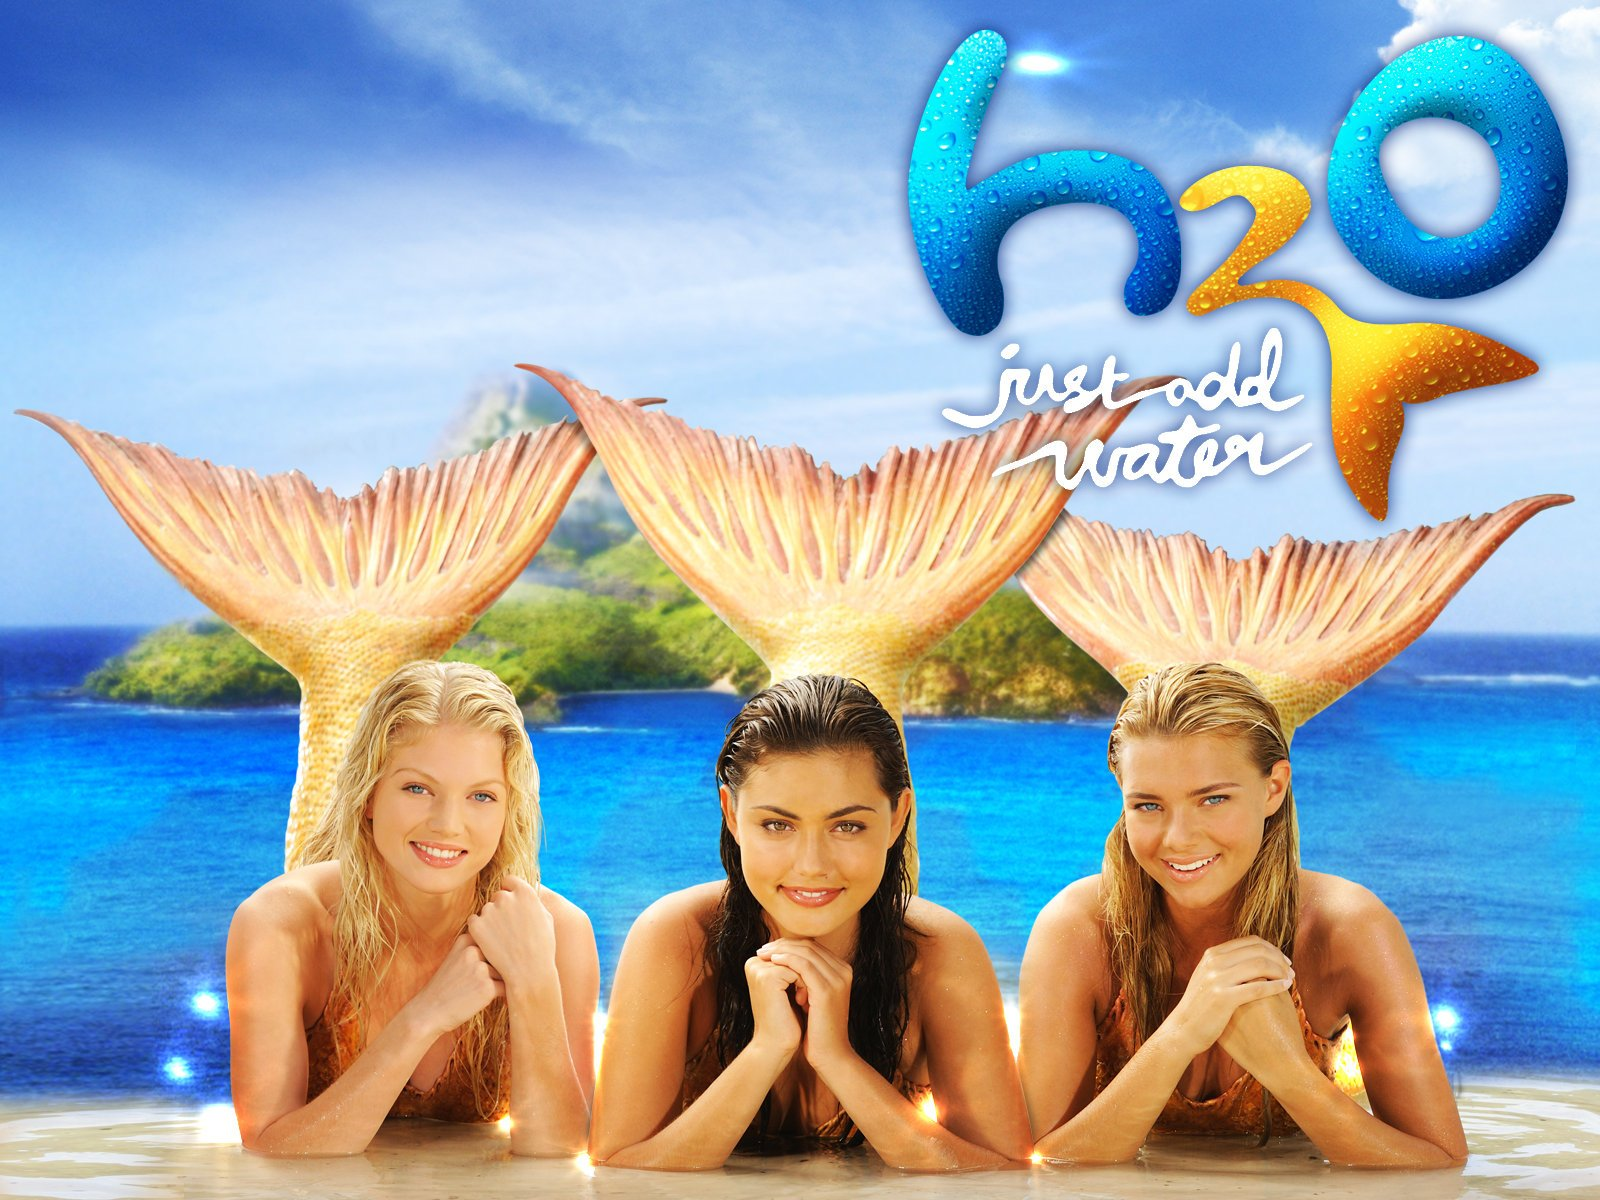 Amazon H2O Just Add Water Season 3 Cariba Heine Claire Holt Phoebe Tonkin Angus McLaren Burgess Abernethy Cleo Massey Alan David Lee